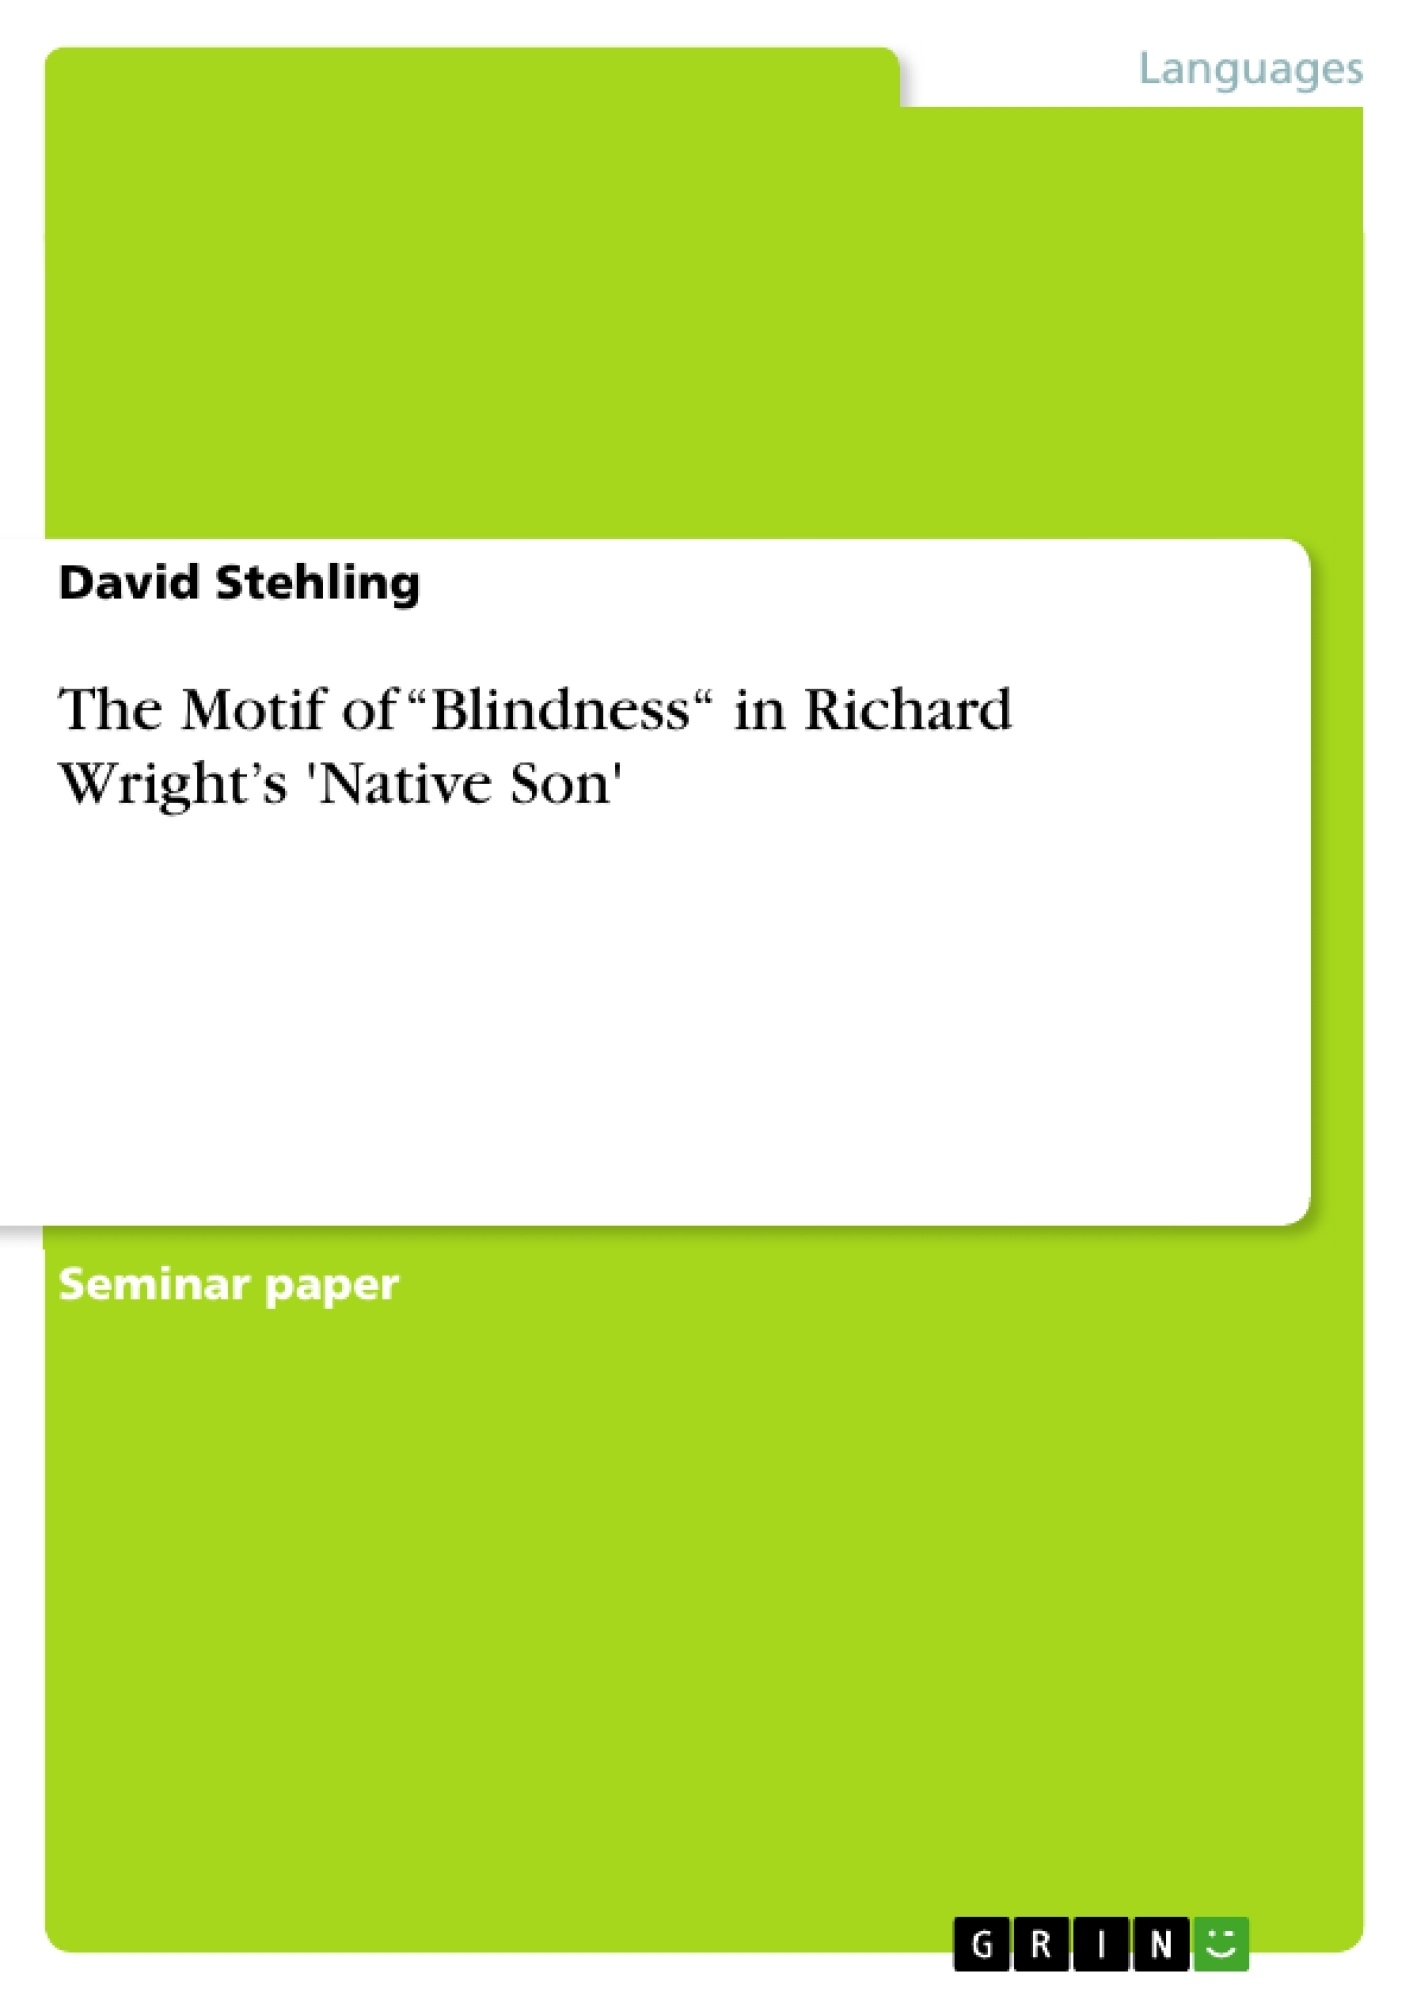 native son essays the motif of ldquo blindness ldquo in richard  the motif of ldquo blindness ldquo in richard wright s native son the motif of ldquoblindnessldquo james baldwin essays